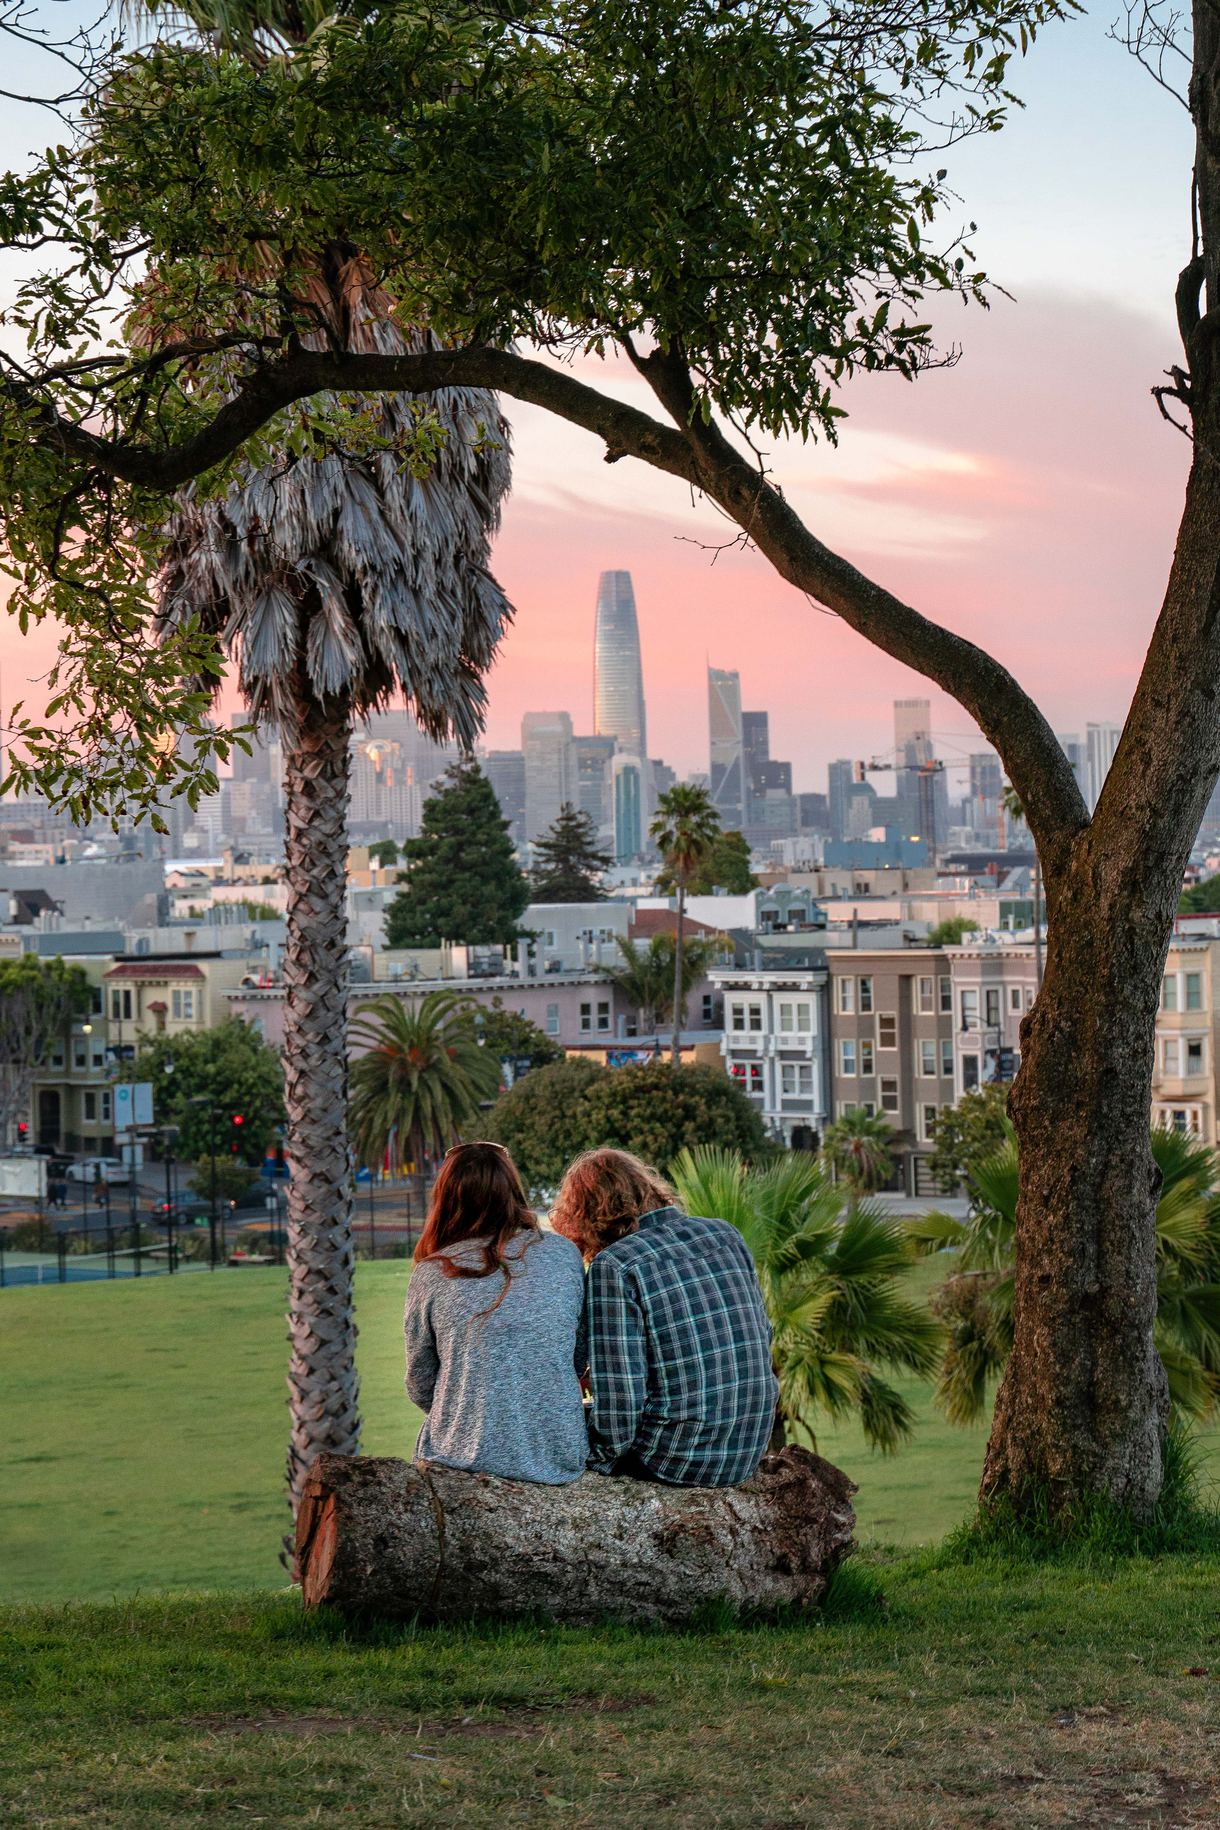 Mission Dolores Park, Dolores and 19th Streets, San Francisco.